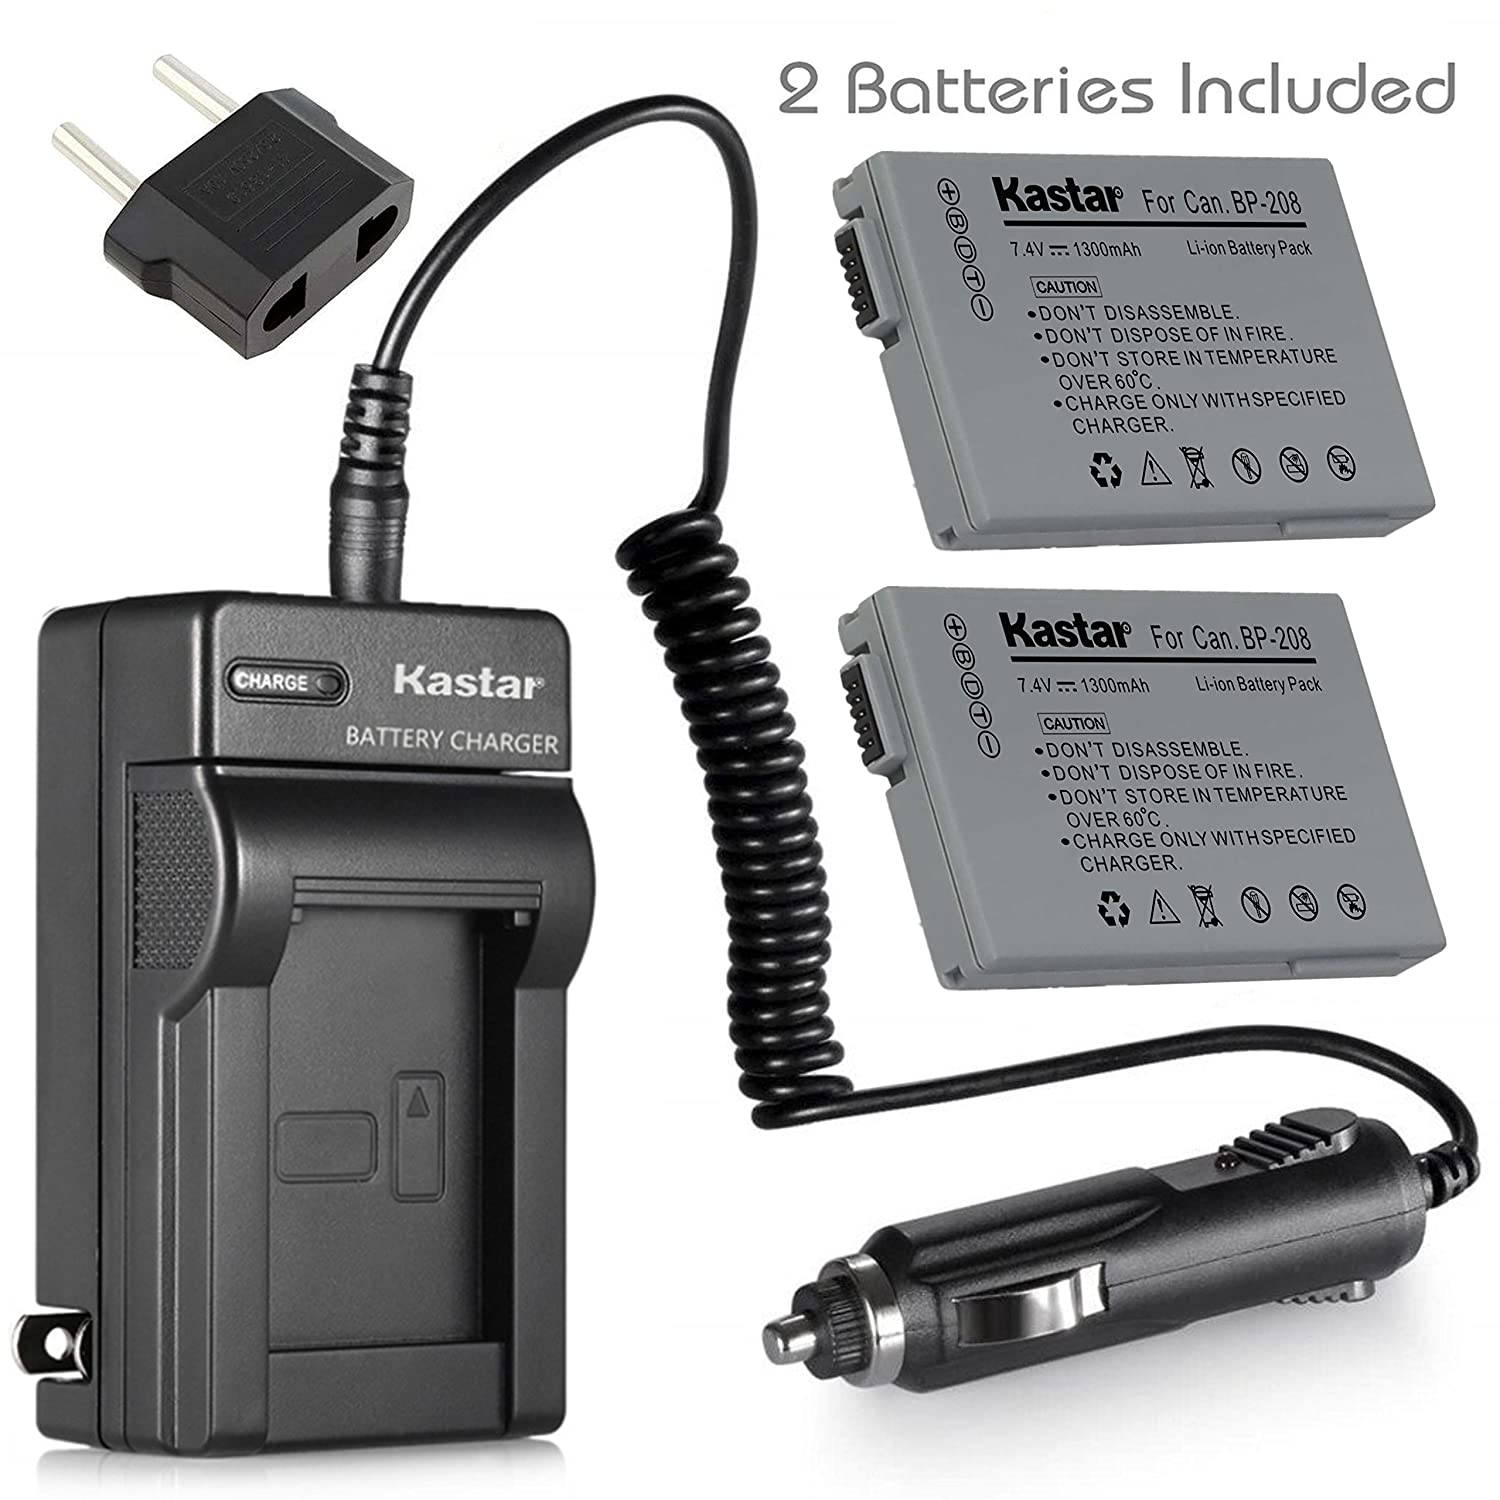 Amazon.com : Kastar 2 Battery and Charger for Canon BP-208 Battery and Canon  DC100 DC210 DC230 Cameras : Digital Camera Battery Chargers : Camera & Photo